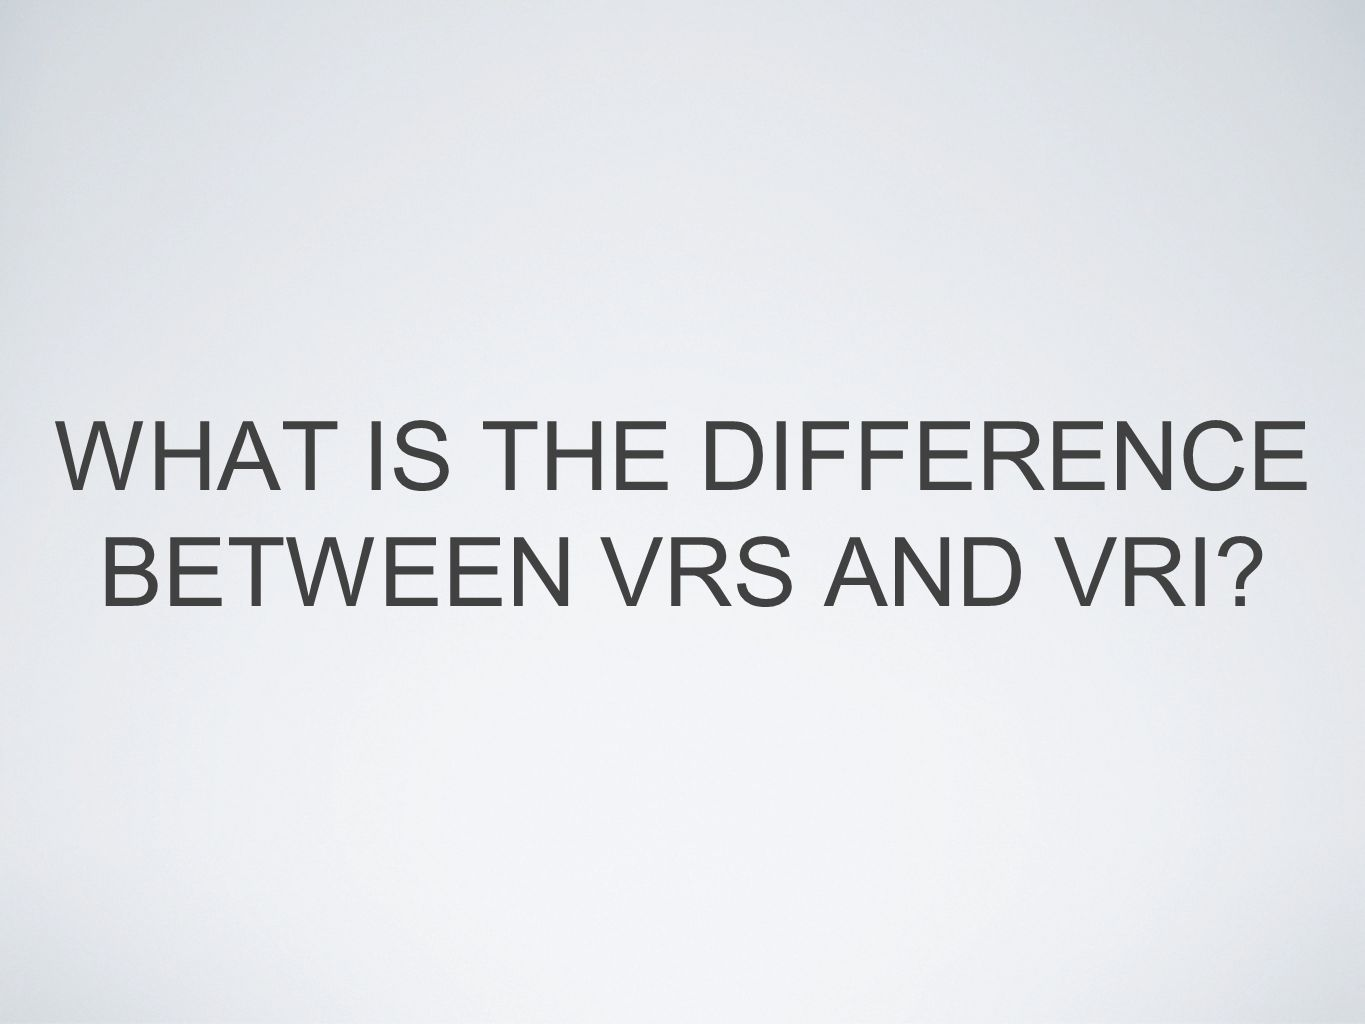 WHAT IS THE DIFFERENCE BETWEEN VRS AND VRI